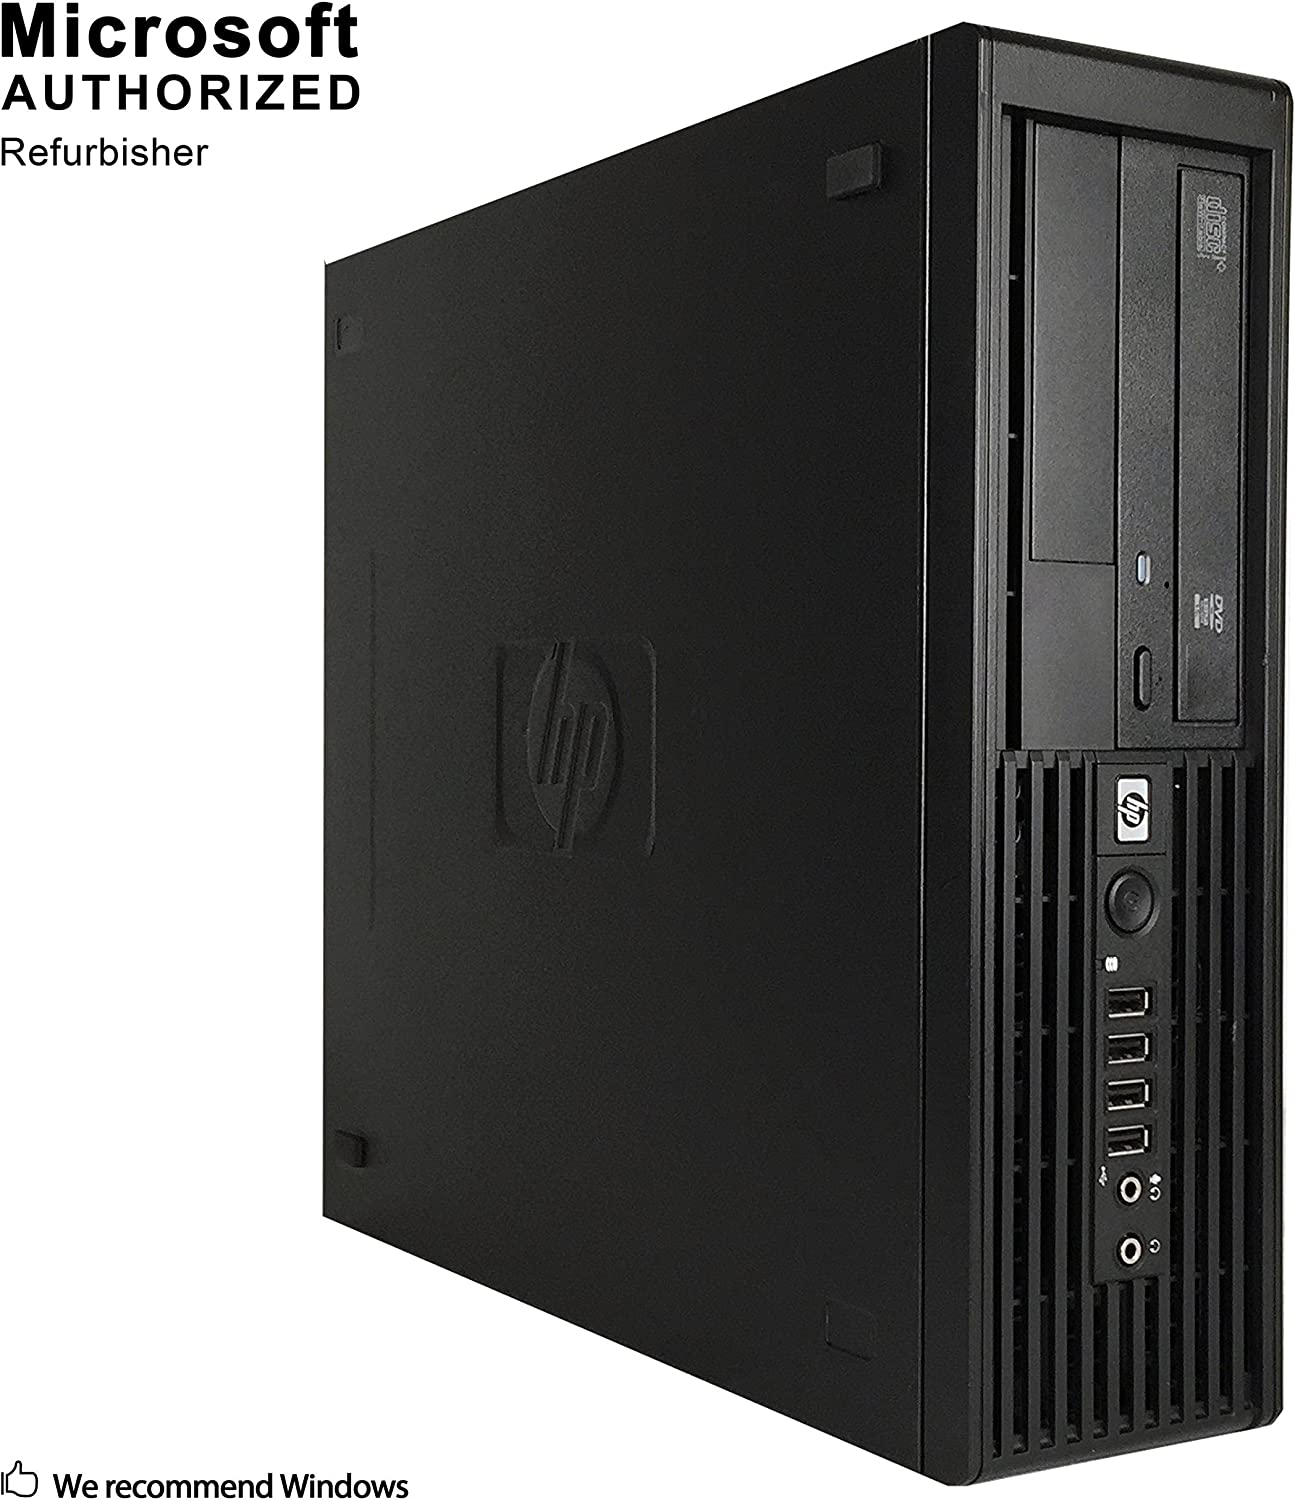 HP Z220 Workstation SFF,Intel Core I5 3570 up to 3.8G,8G DDR3, 360G SSD,DVD,WiFi,VGA,DP Port,HDMI,USB 3.0,BT 4.0,NVS 310 Graphics,W10P64 -Support-English/Spanish (Renewed)